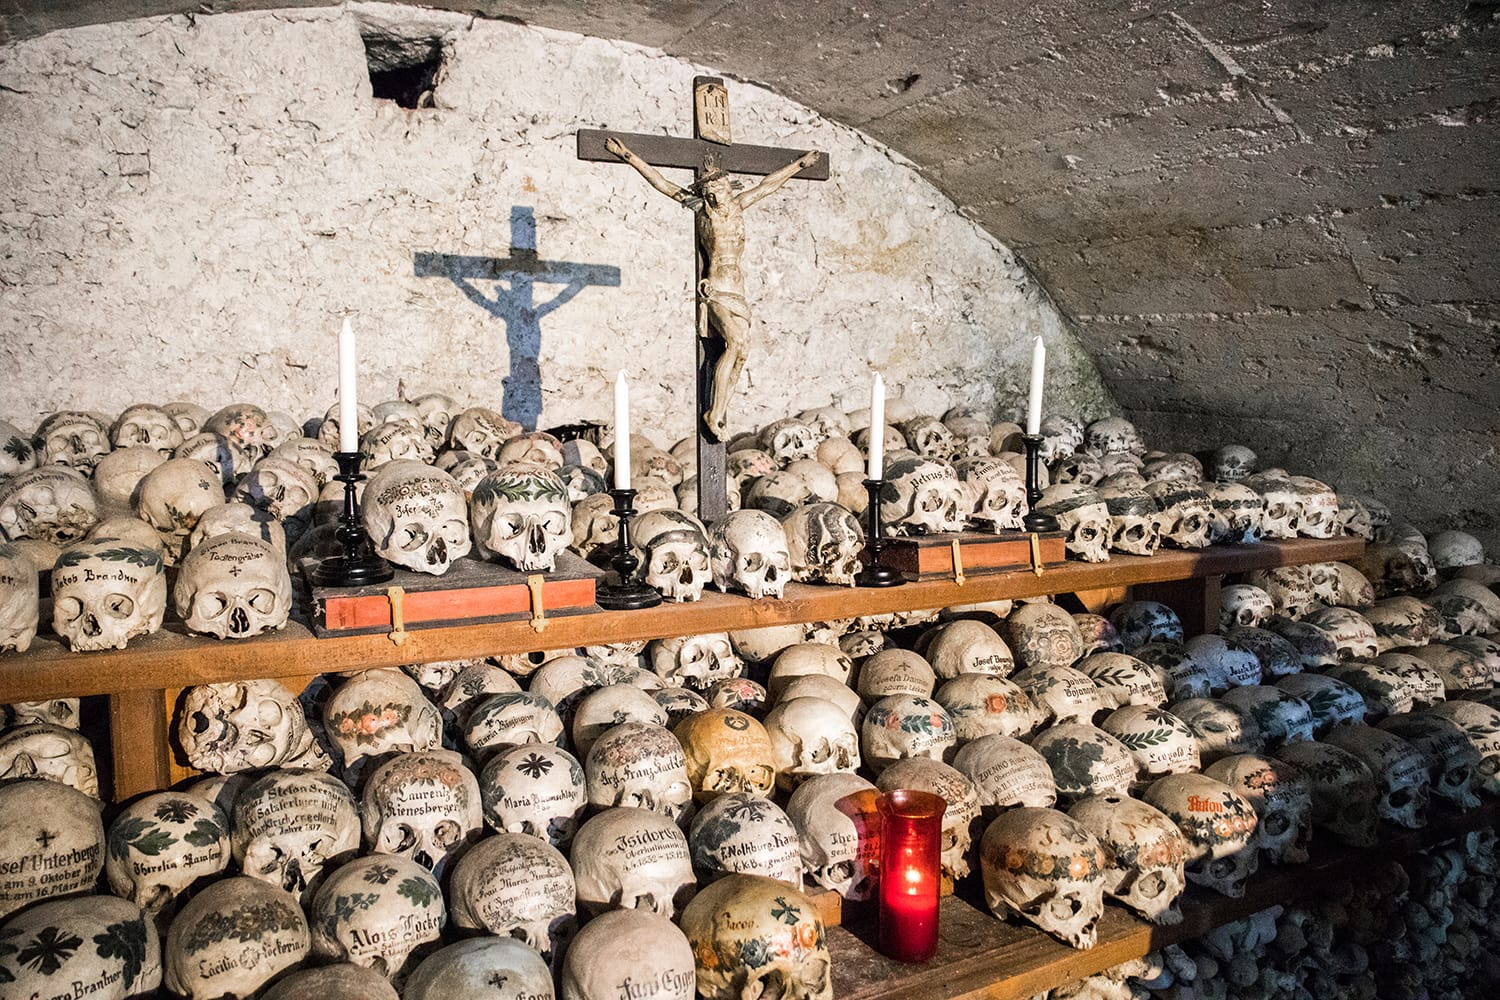 Skulls painted with names, colorful flowers and crosses in the Charnel House or Beinhaus, Hallstatt, Austria